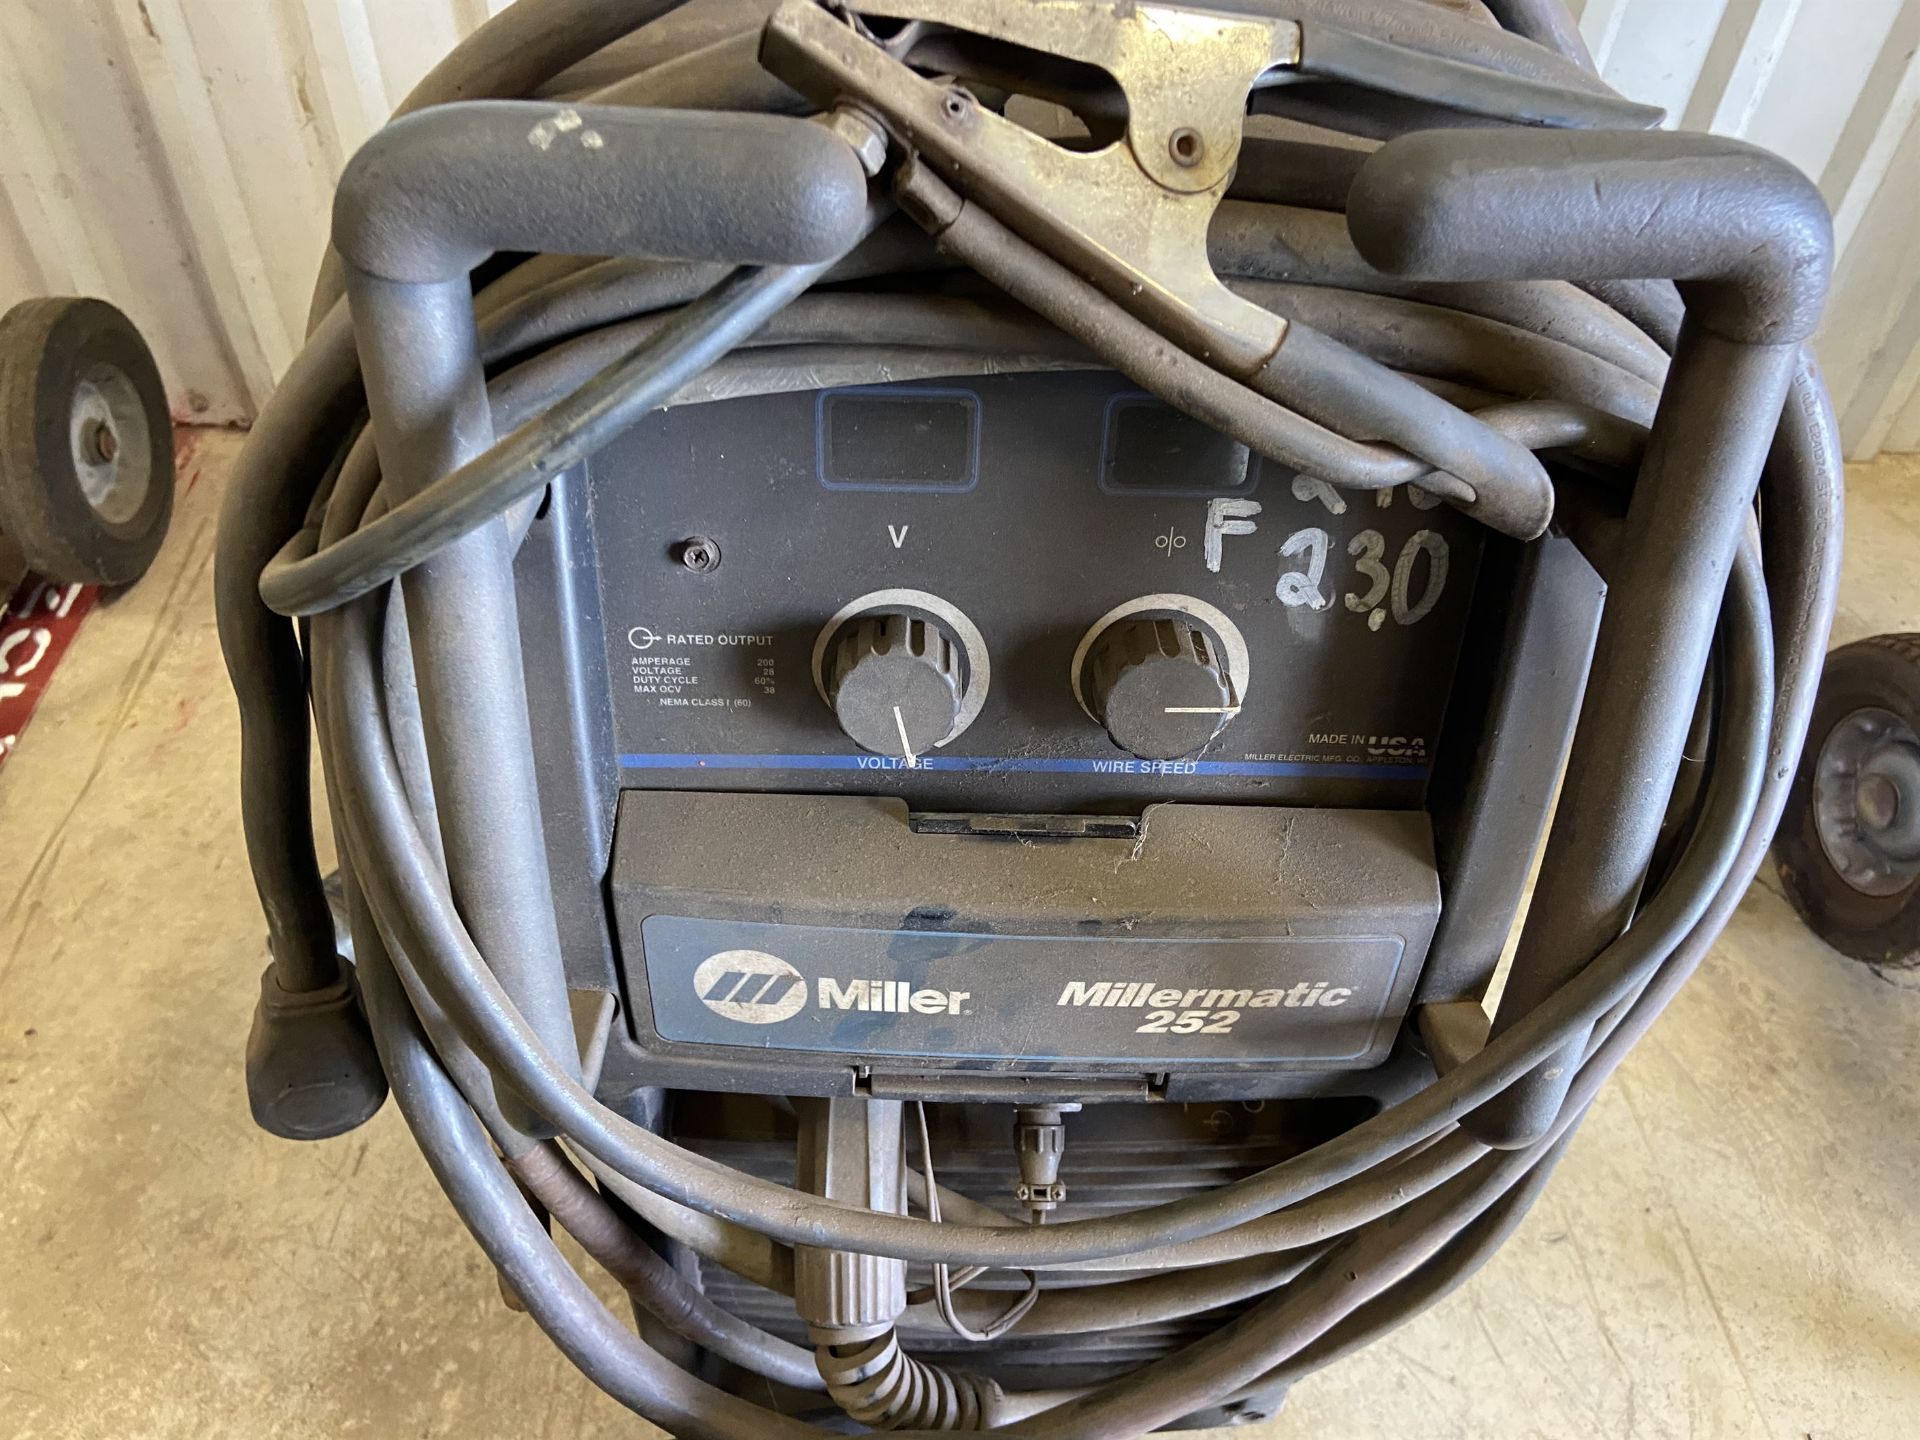 Millermatic 252 Welder s/n MB51056ON on Cart with Extension Cords - Image 2 of 3